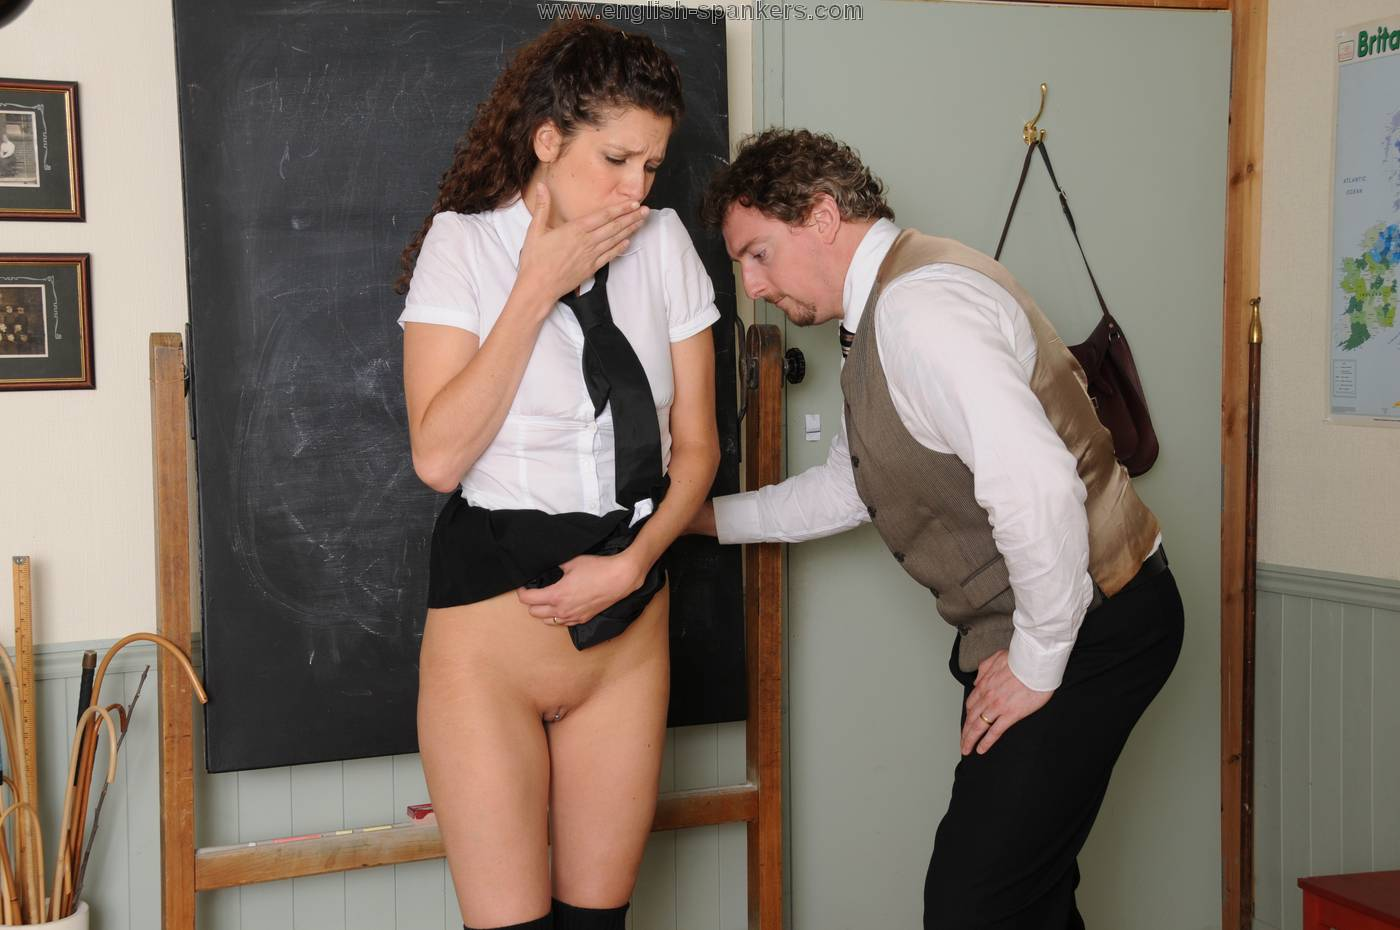 Job interview bondage first time did you 7